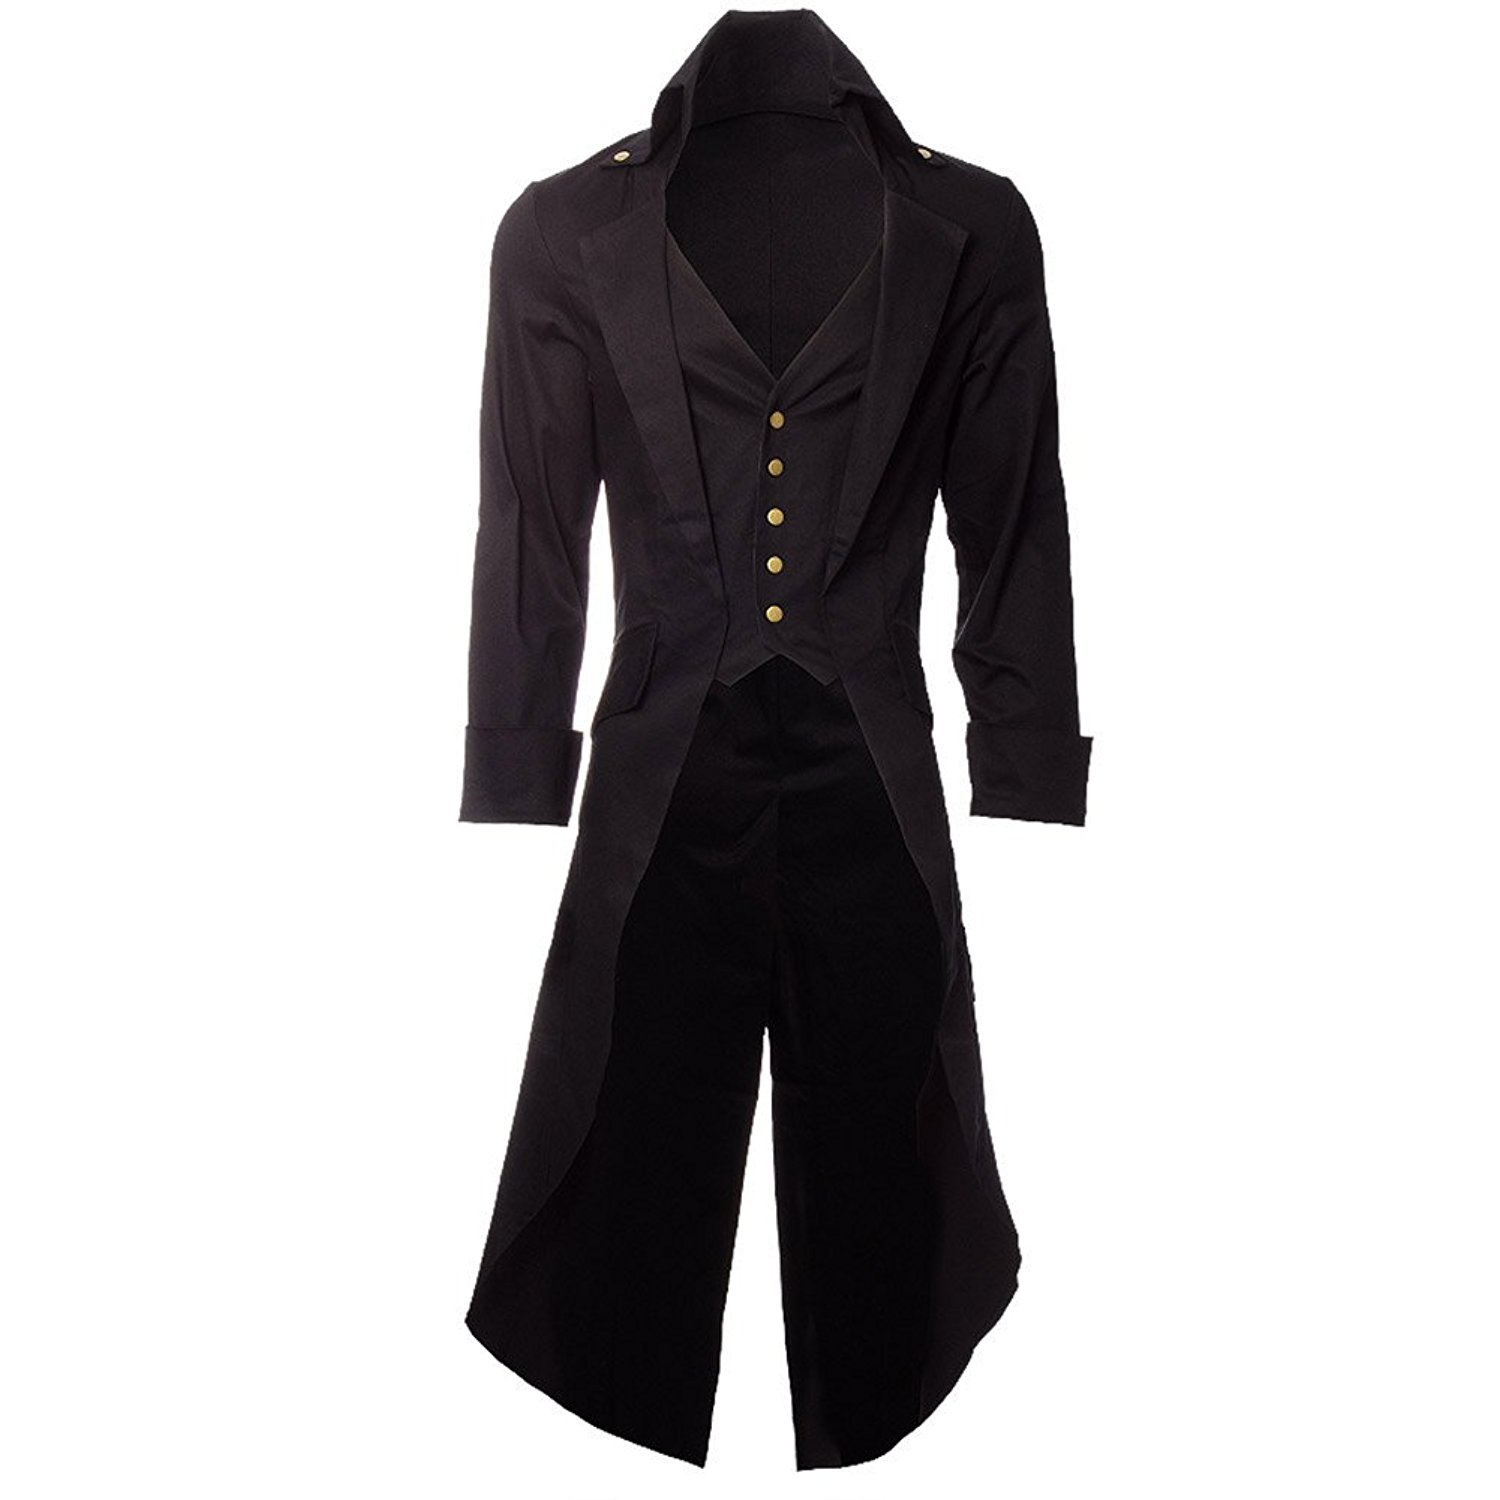 7227e1fef5b Top 10 wholesale Steampunk Trench Coat - Chinabrands.com